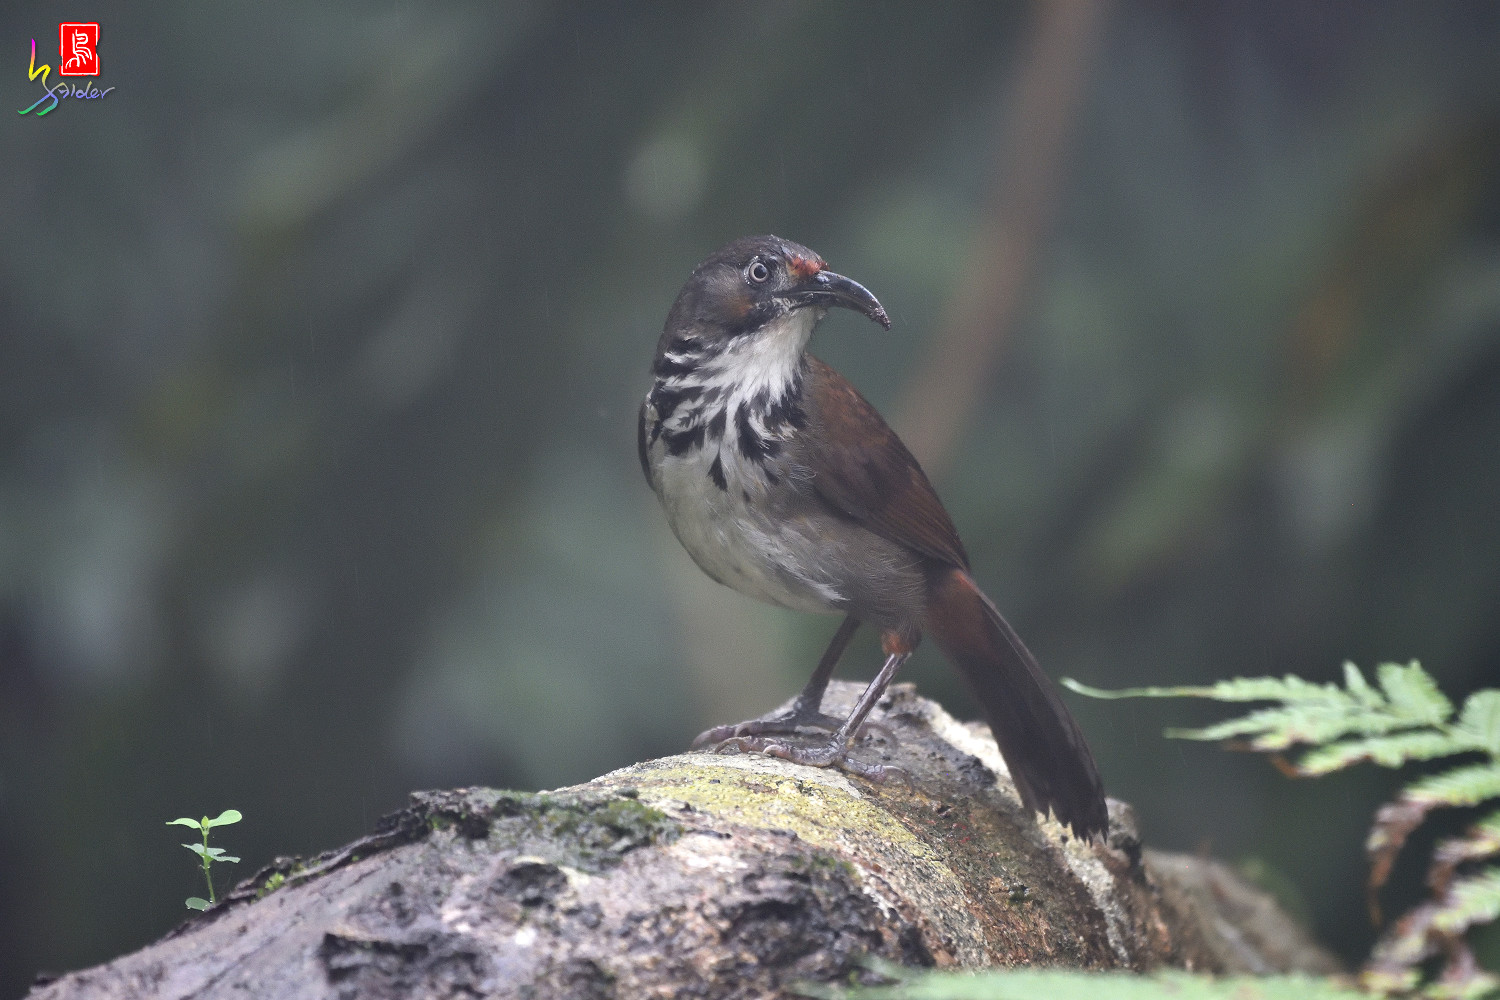 Rusty-cheeked_Scimitar-babbler_4358